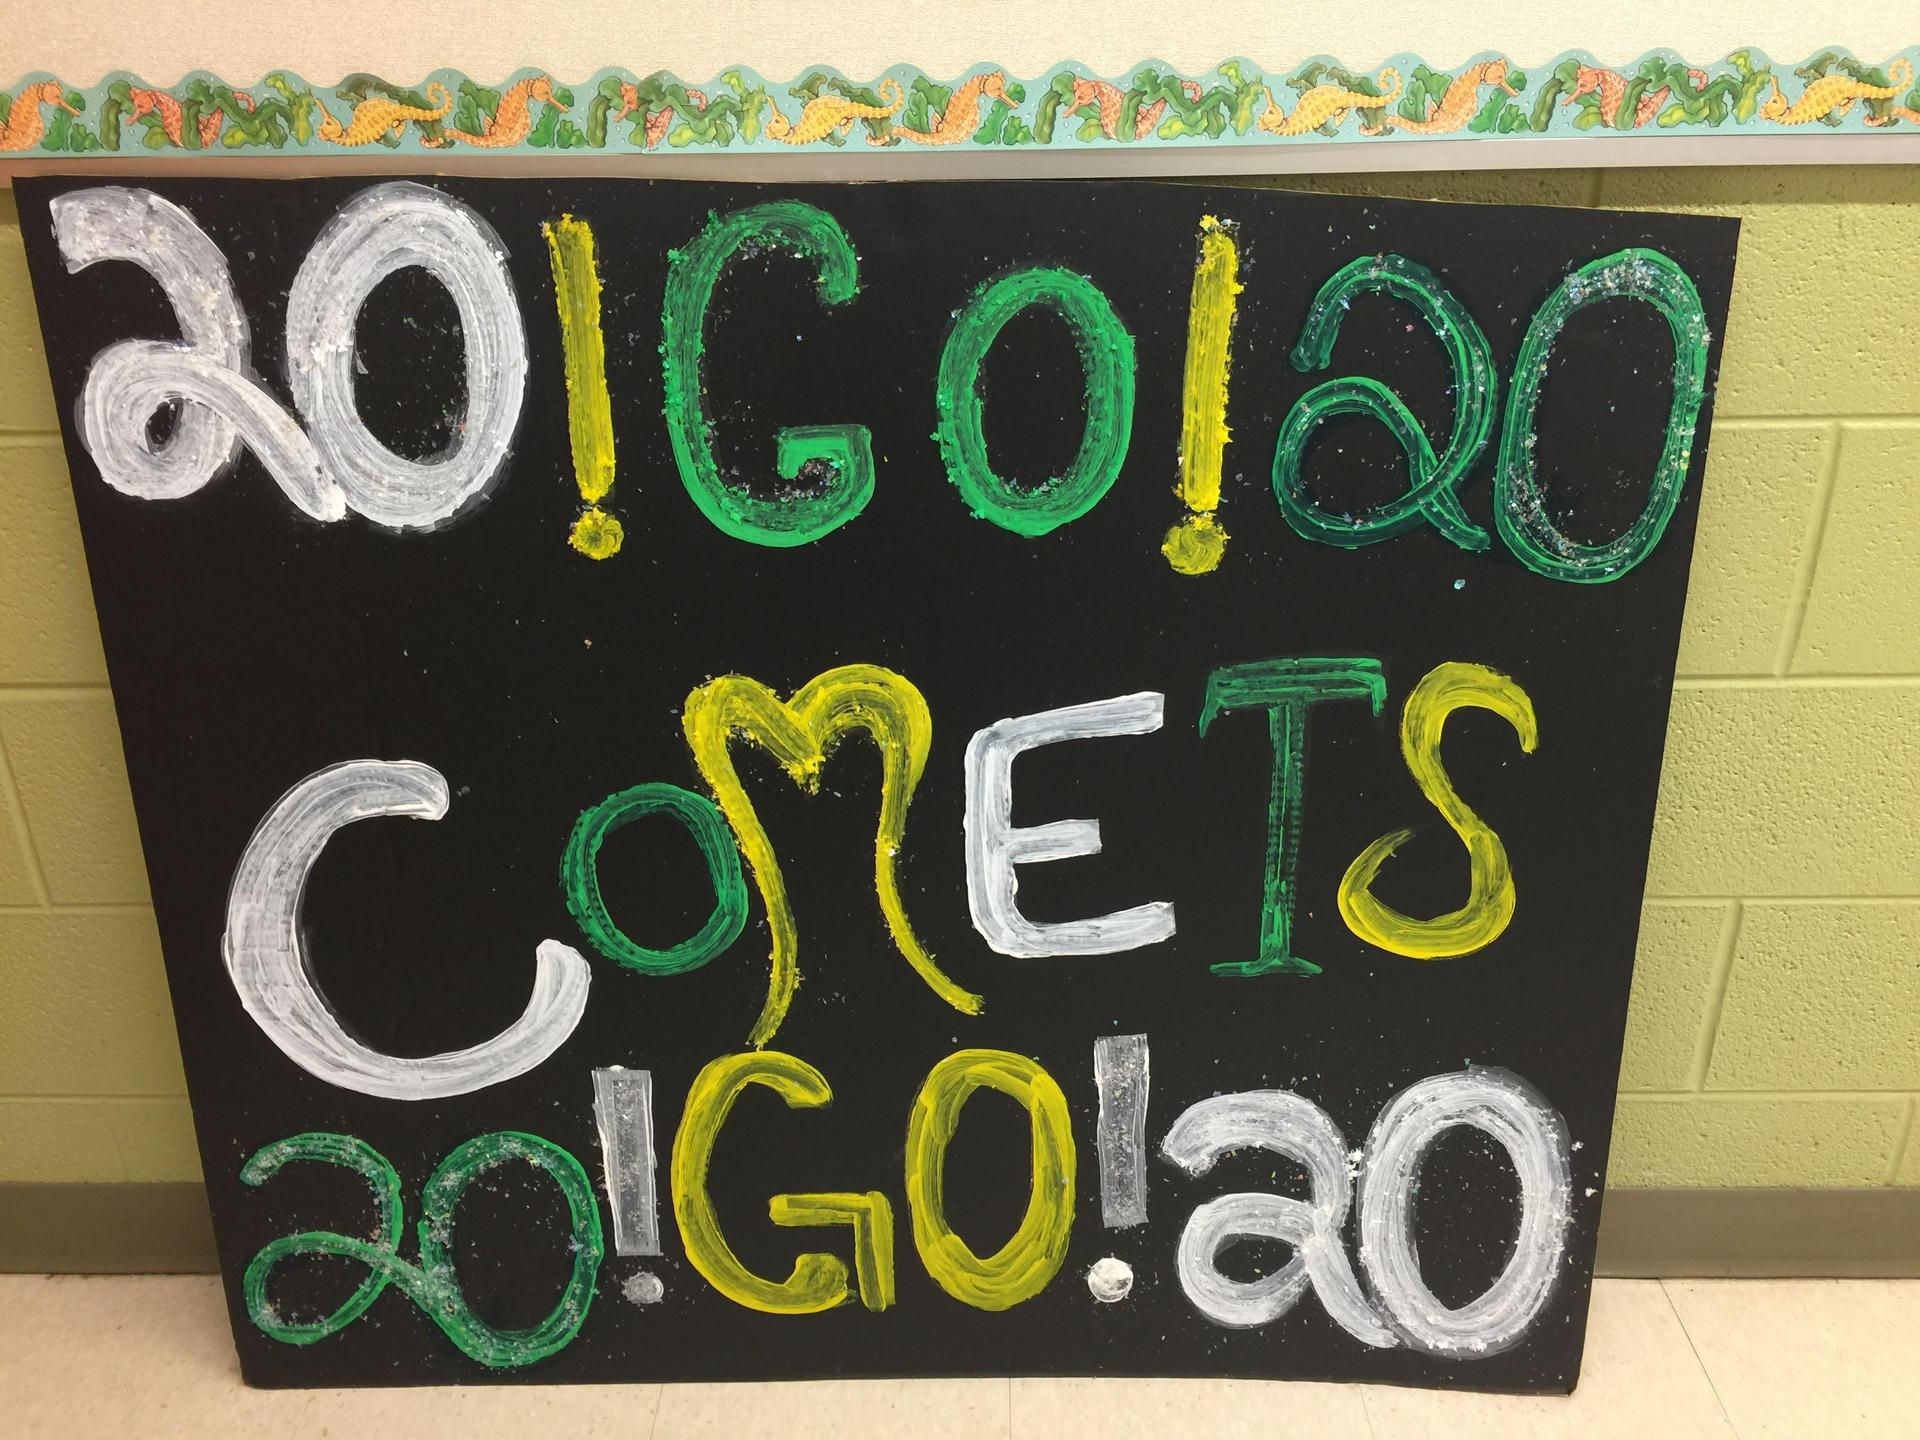 RTI made a spirit sign for Homecoming